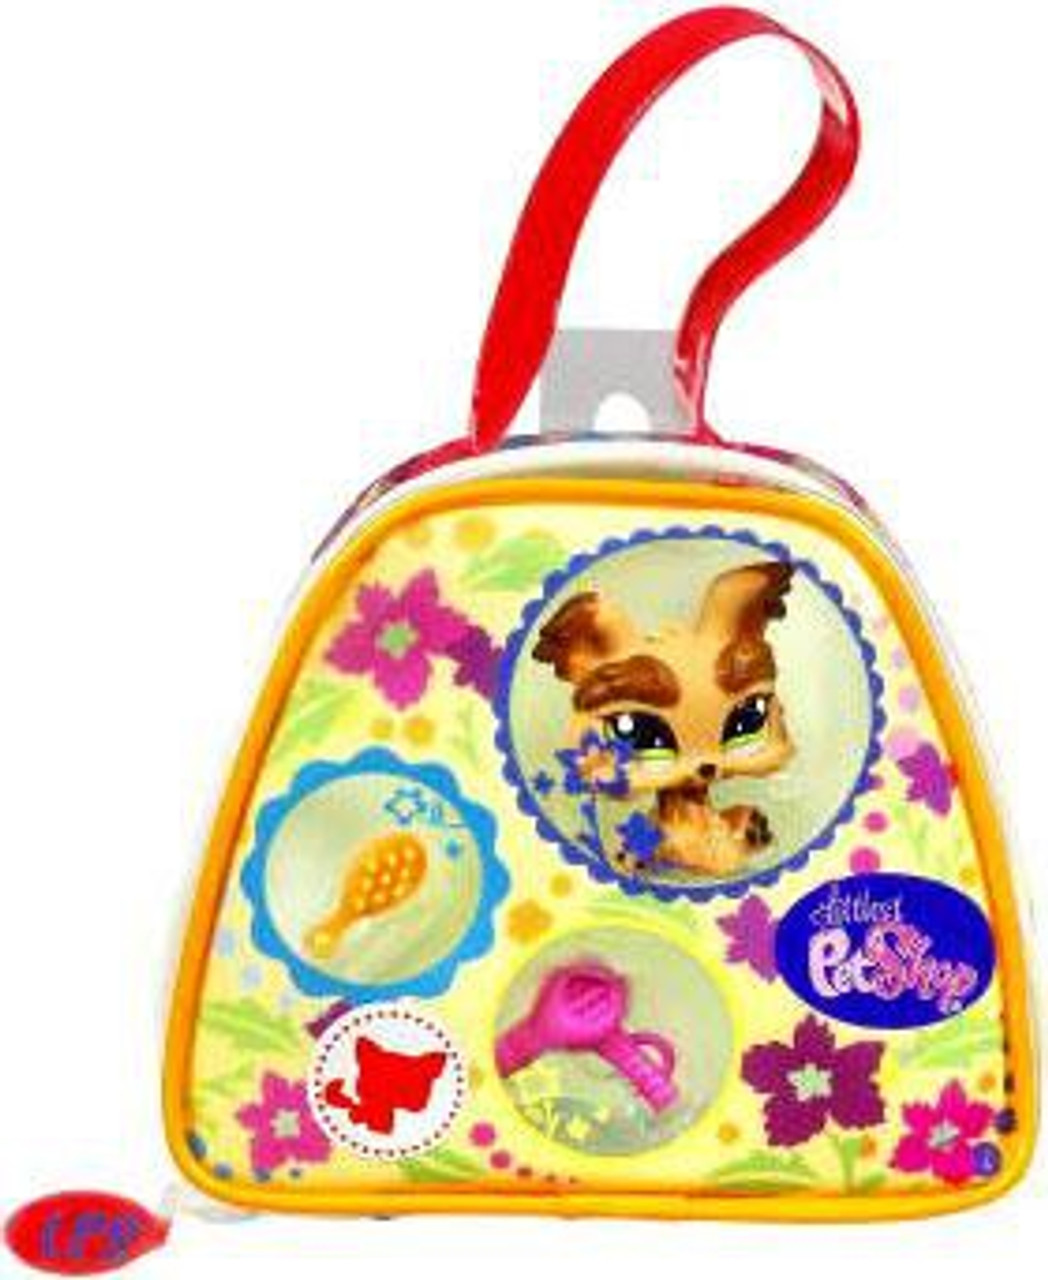 Littlest Pet Shop Yorkie Purse Carry Case